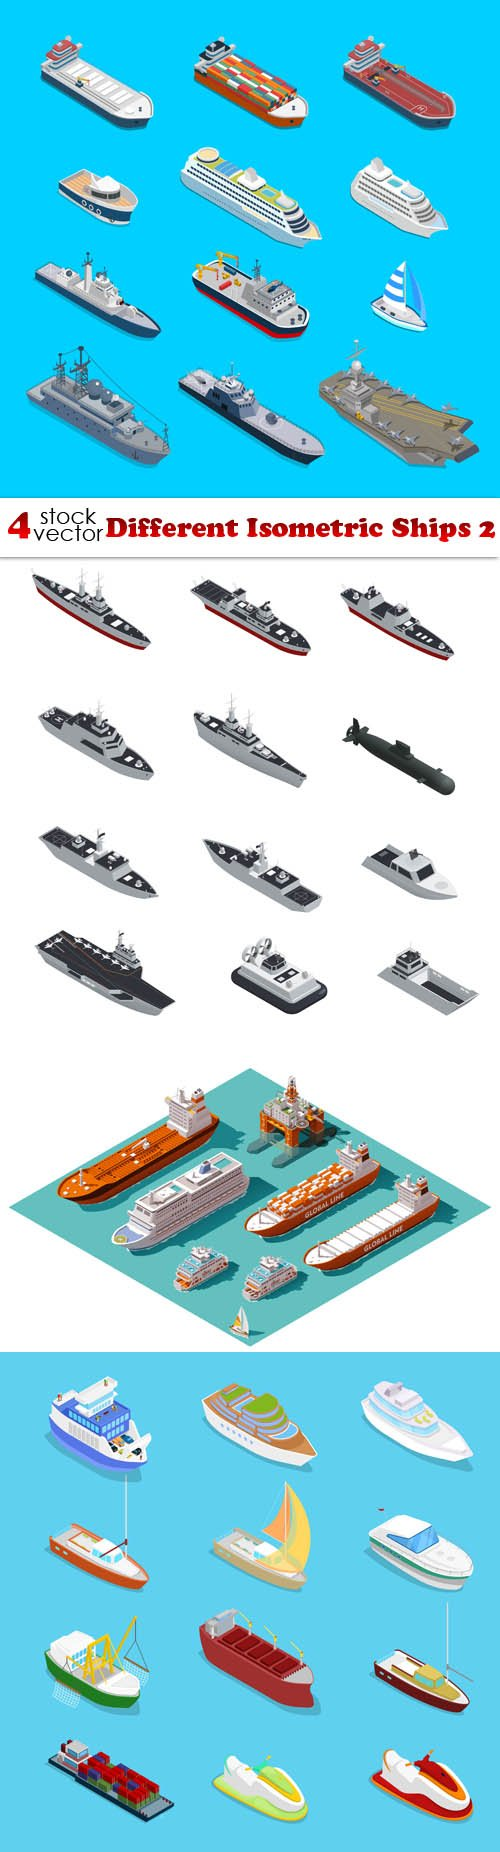 Vectors - Different Isometric Ships 2